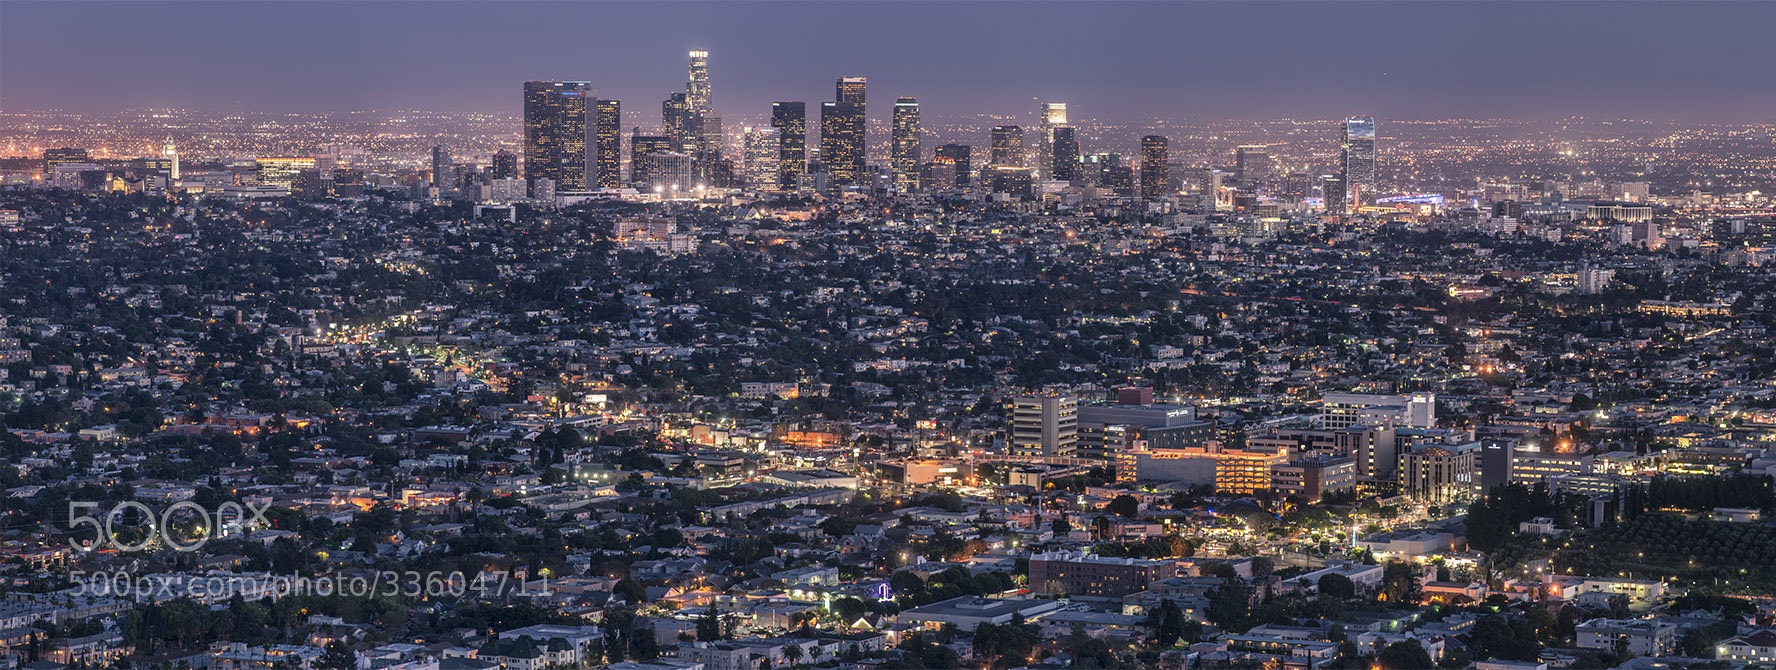 Photograph LA Downtown by daniel vojtech on 500px